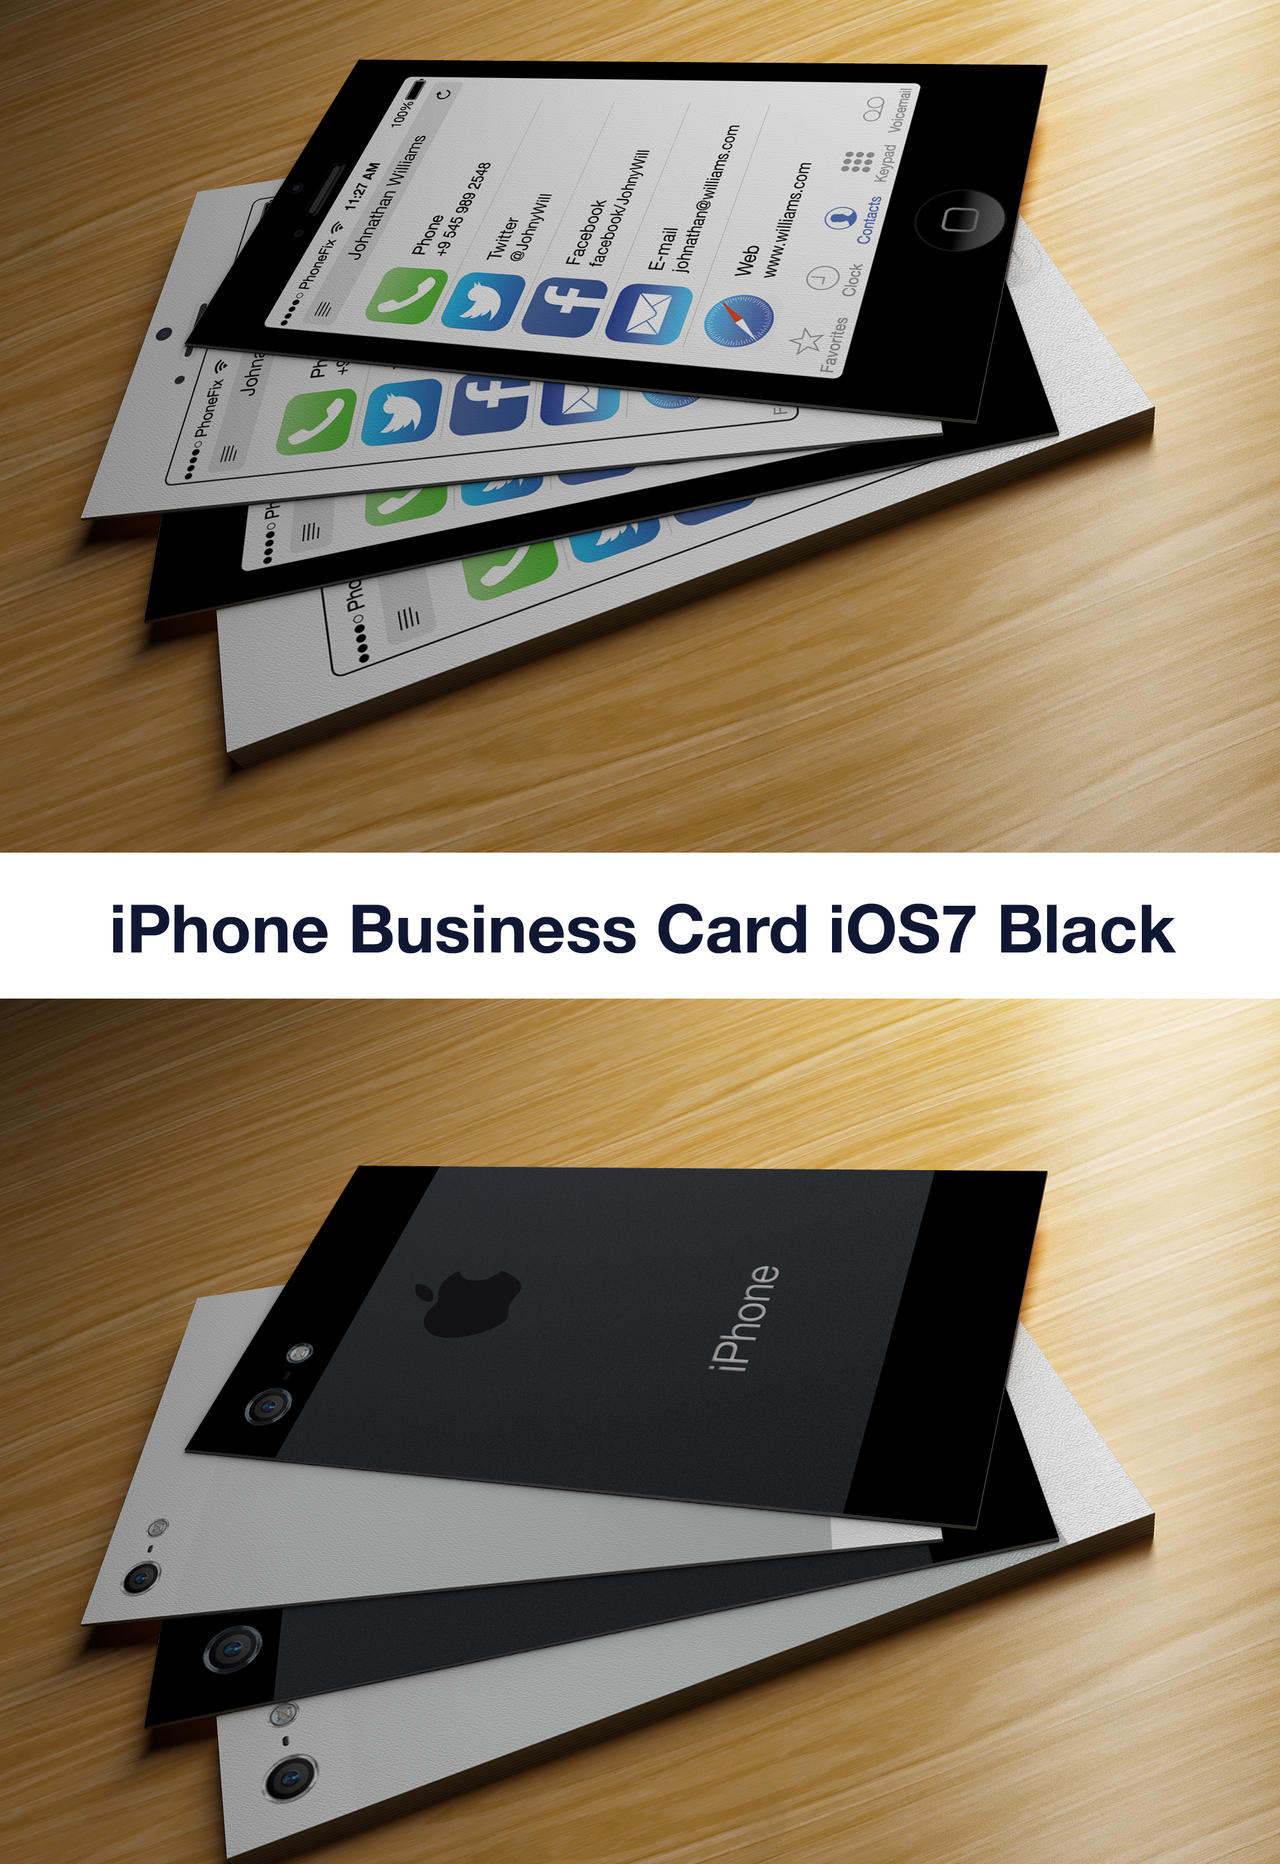 IPhone Business Card iOS7 Black by CaCaDoo on DeviantArt